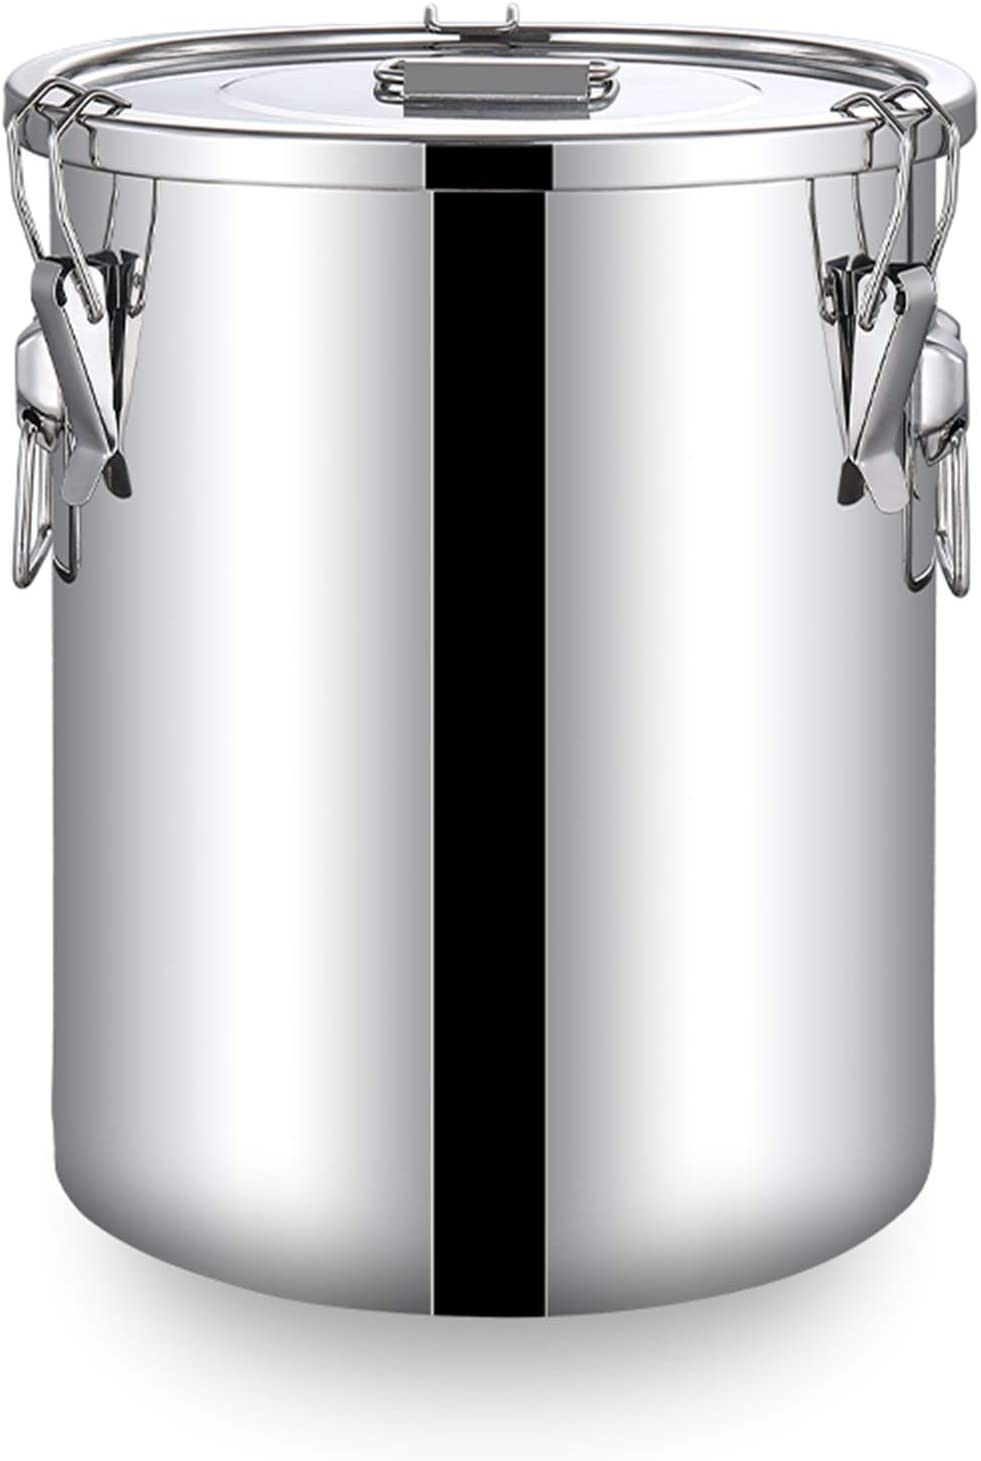 304 Stainless Steel Milk Can, Inexpensive With K Soup Lid Pot Large Al sold out. Bucket